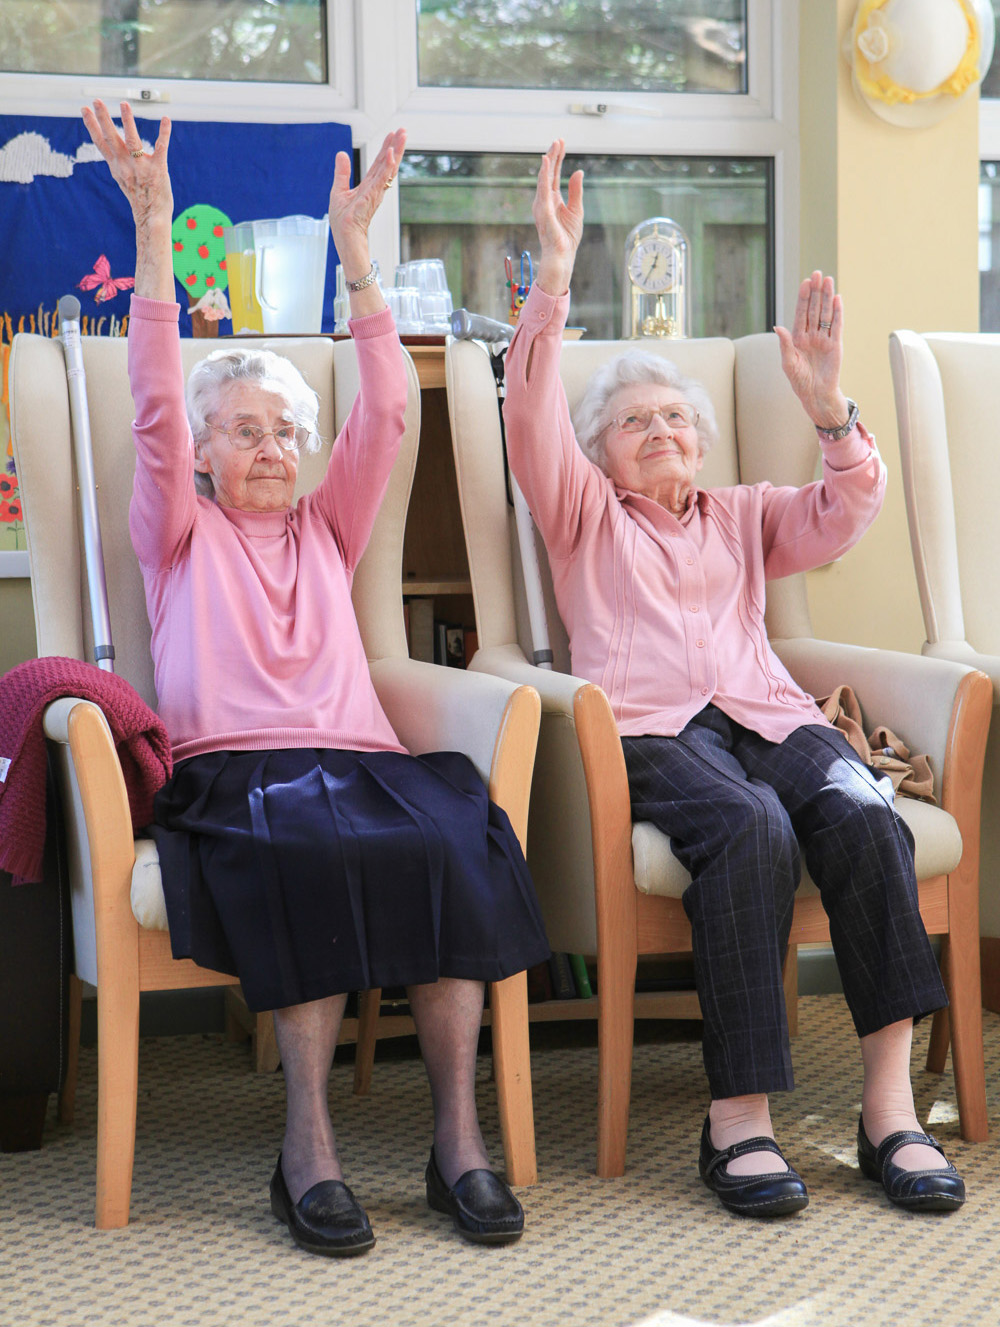 elderly-exercise-mobility-classes-Wiltshire.jpg